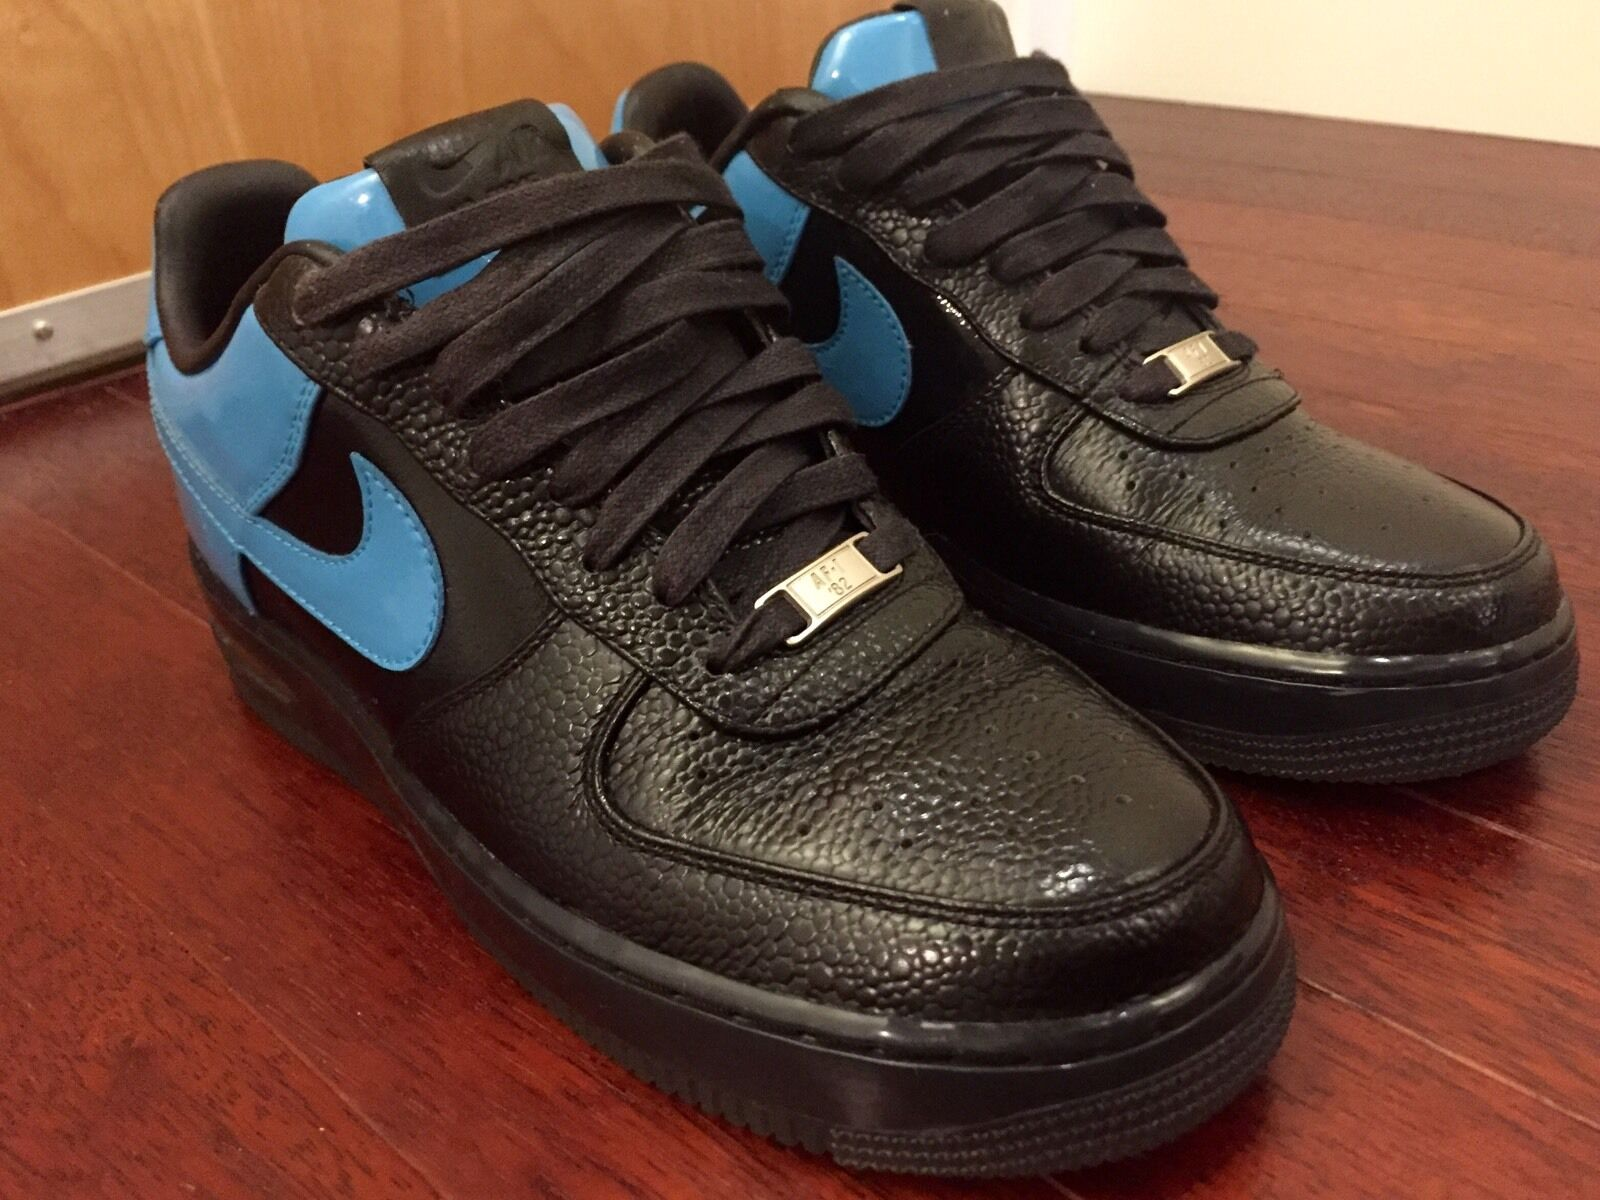 Nike air force 1 oberste 2008 all star - star all 8f76c1